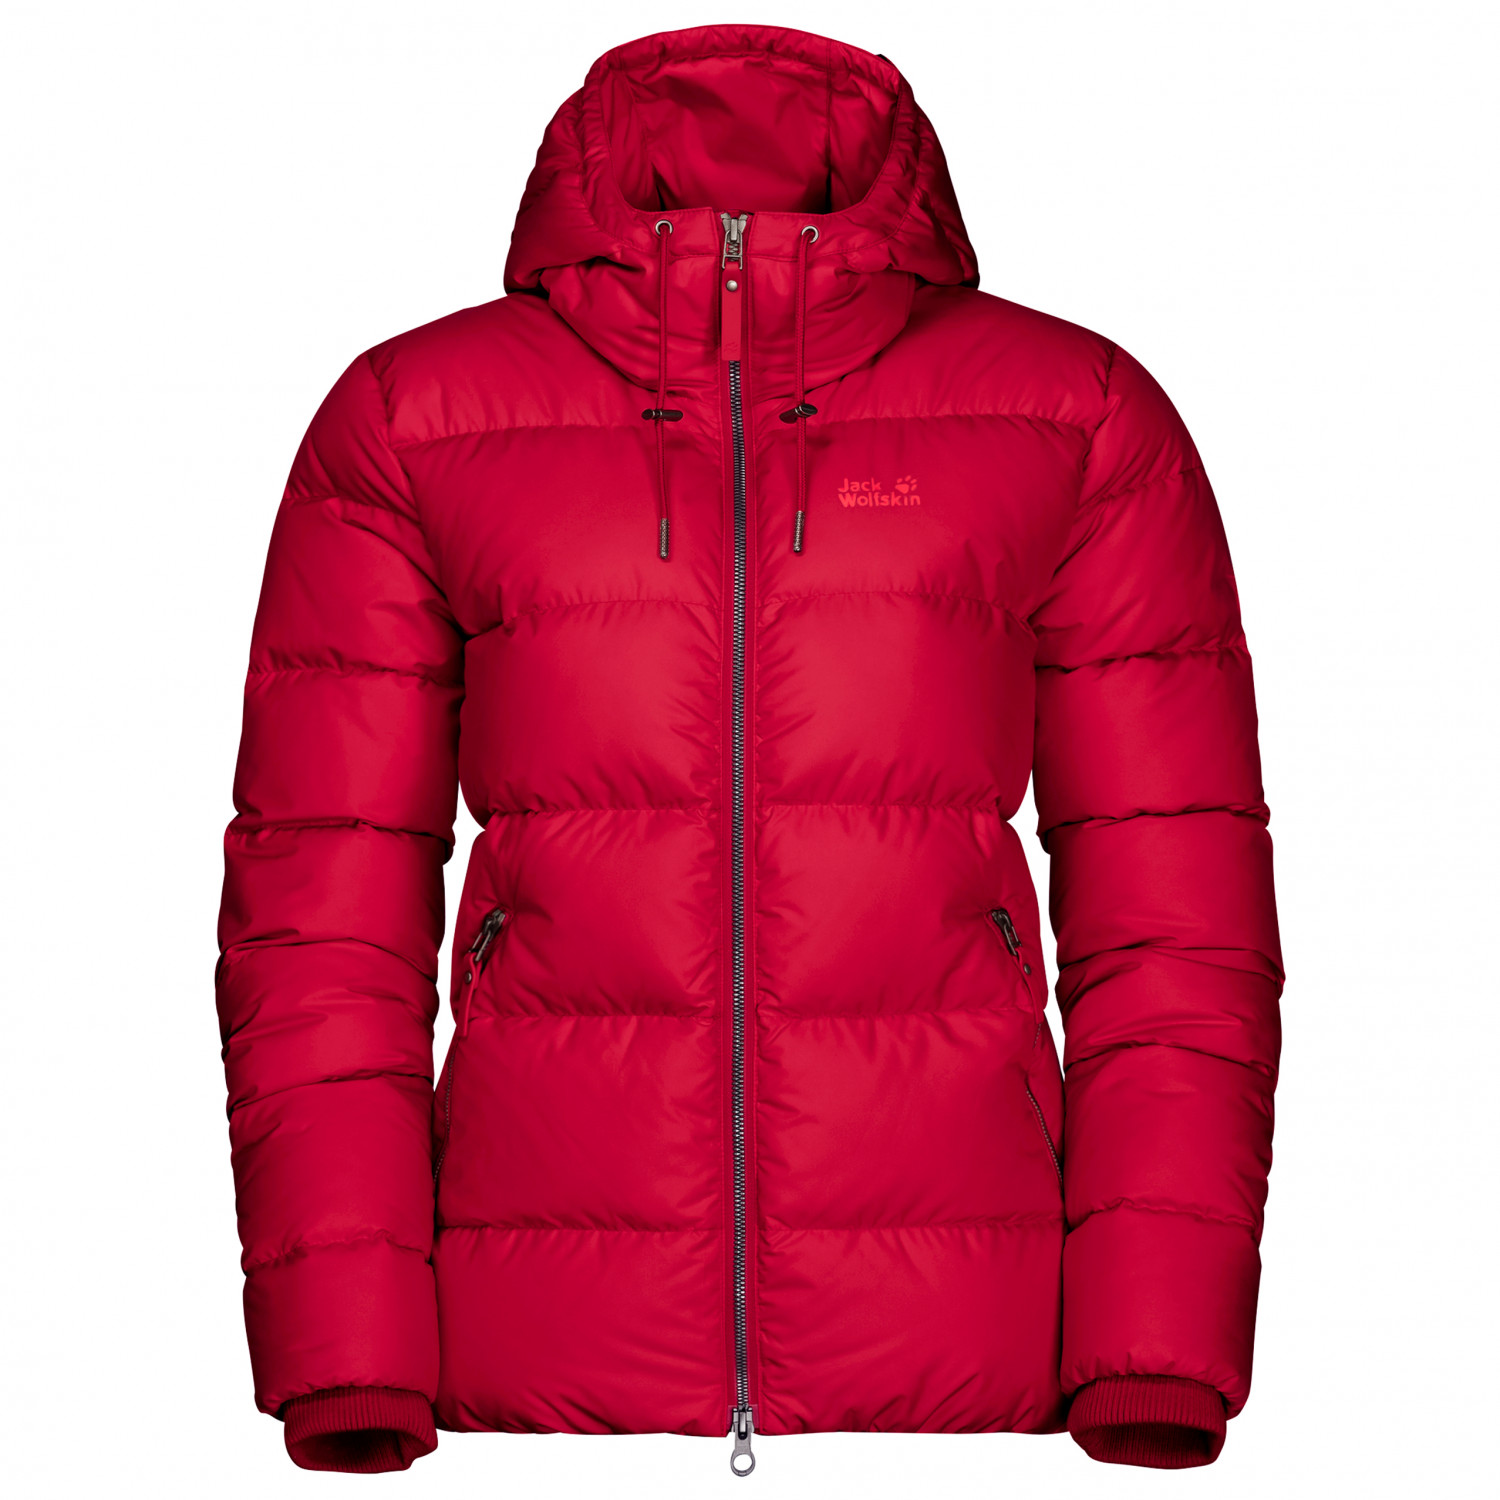 Jack Wolfskin Women's Crystal Palace Jacket Down jacket Ruby Red | S